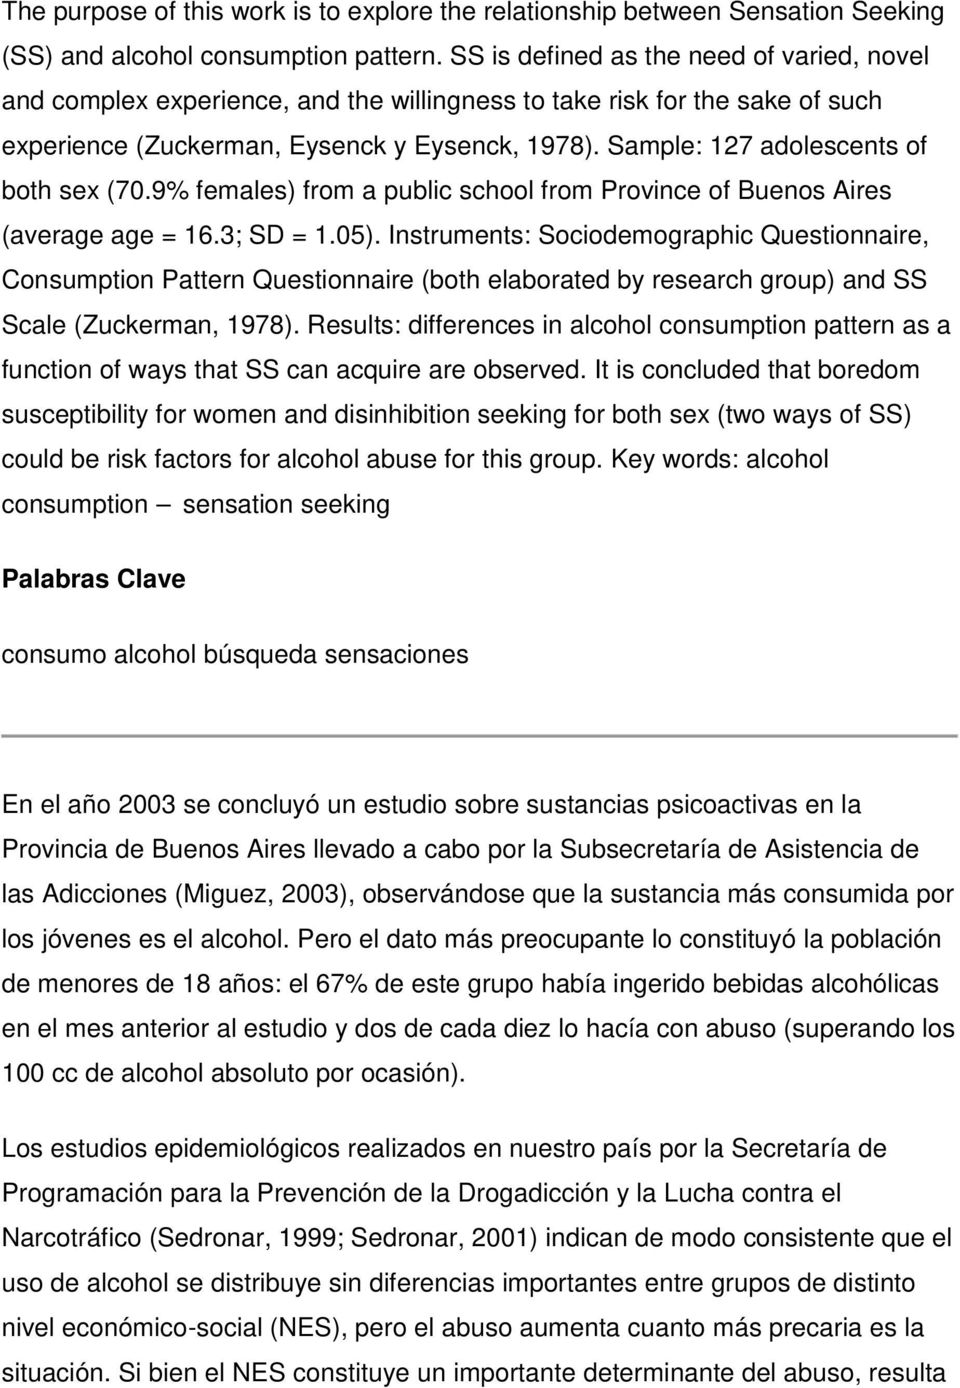 Sample: 127 adolescents of both sex (70.9% females) from a public school from Province of Buenos Aires (average age = 16.3; SD = 1.05).